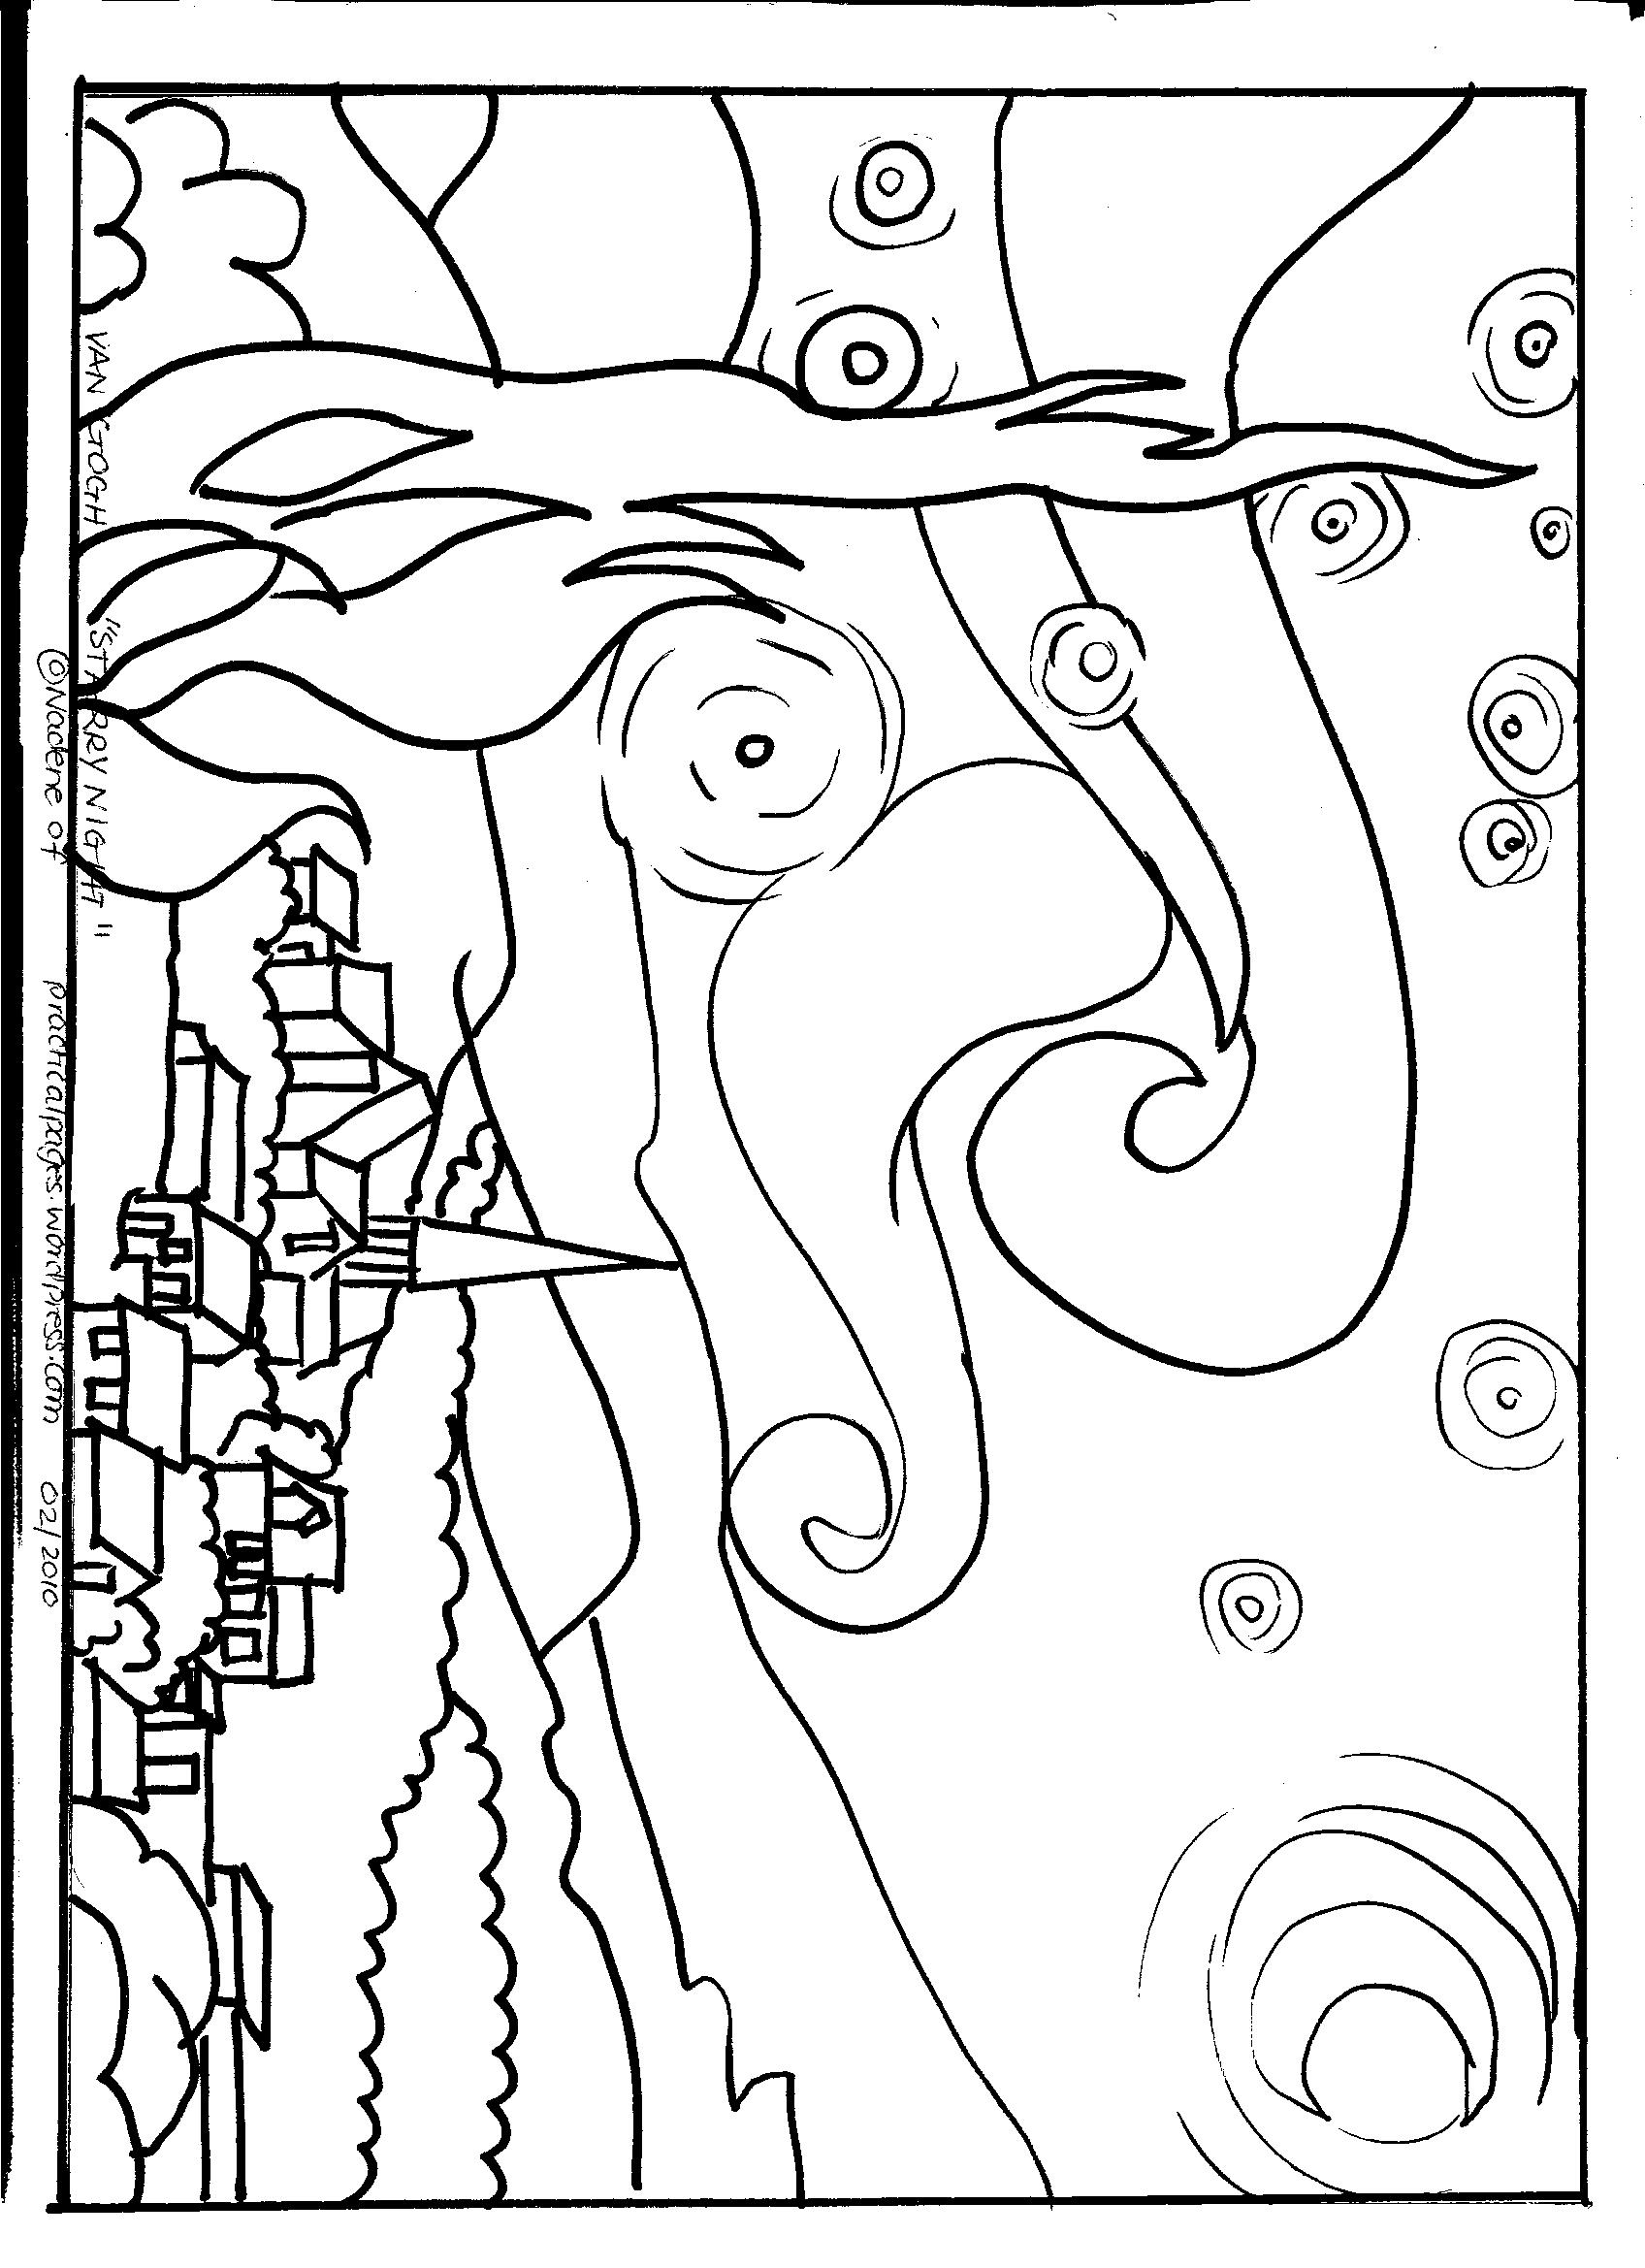 coloring pages van gough - photo#4